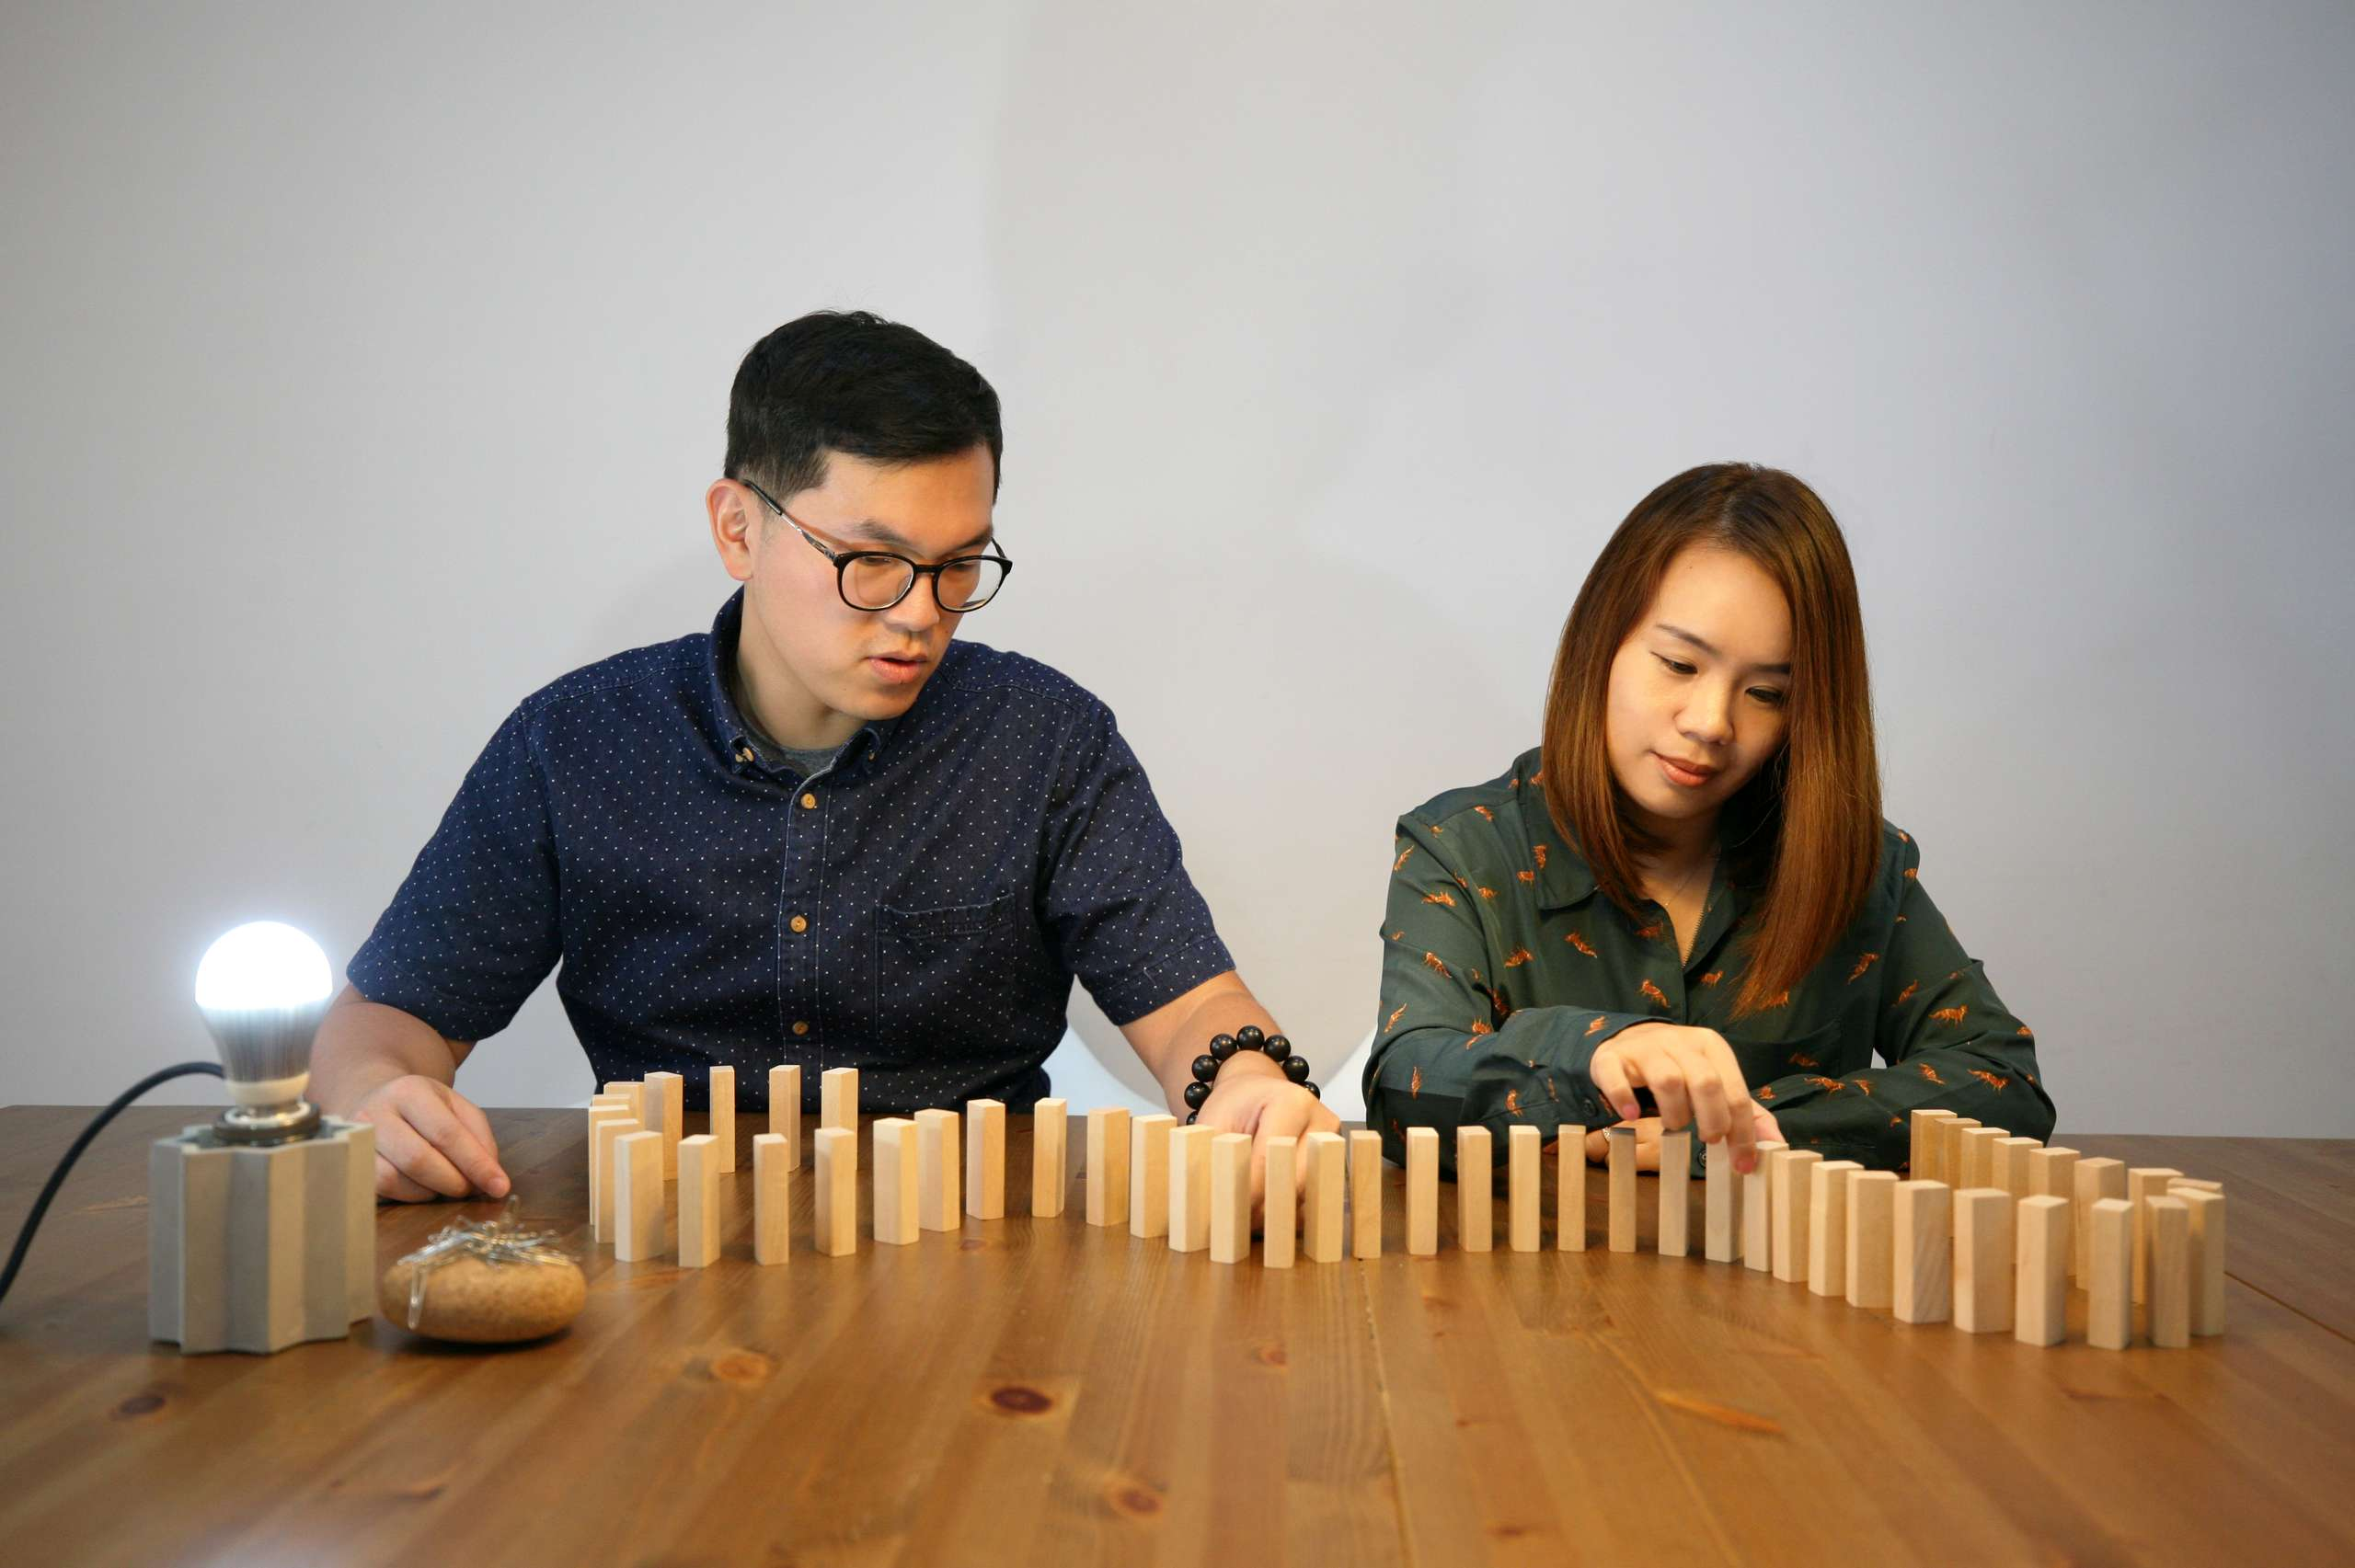 Nomad Design Macau Stanley and Sadie moving wooden blocks around a table and thinking about a design project.